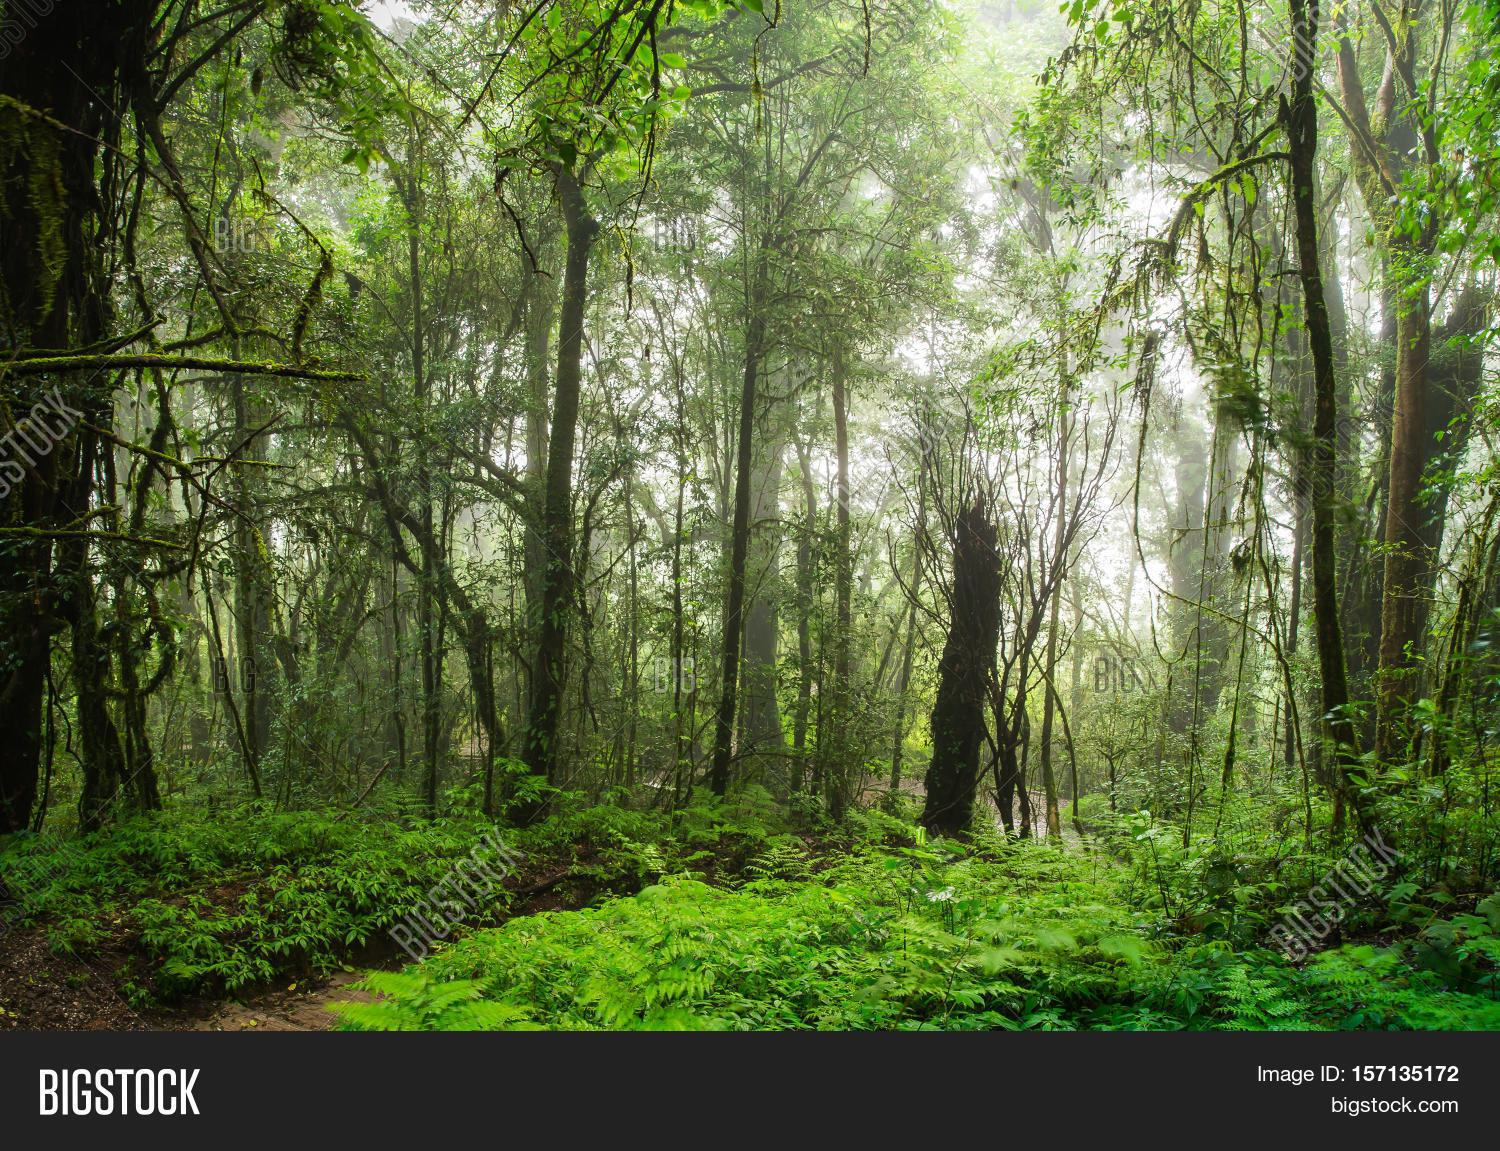 rainforest mist foggy image photo free trial bigstock